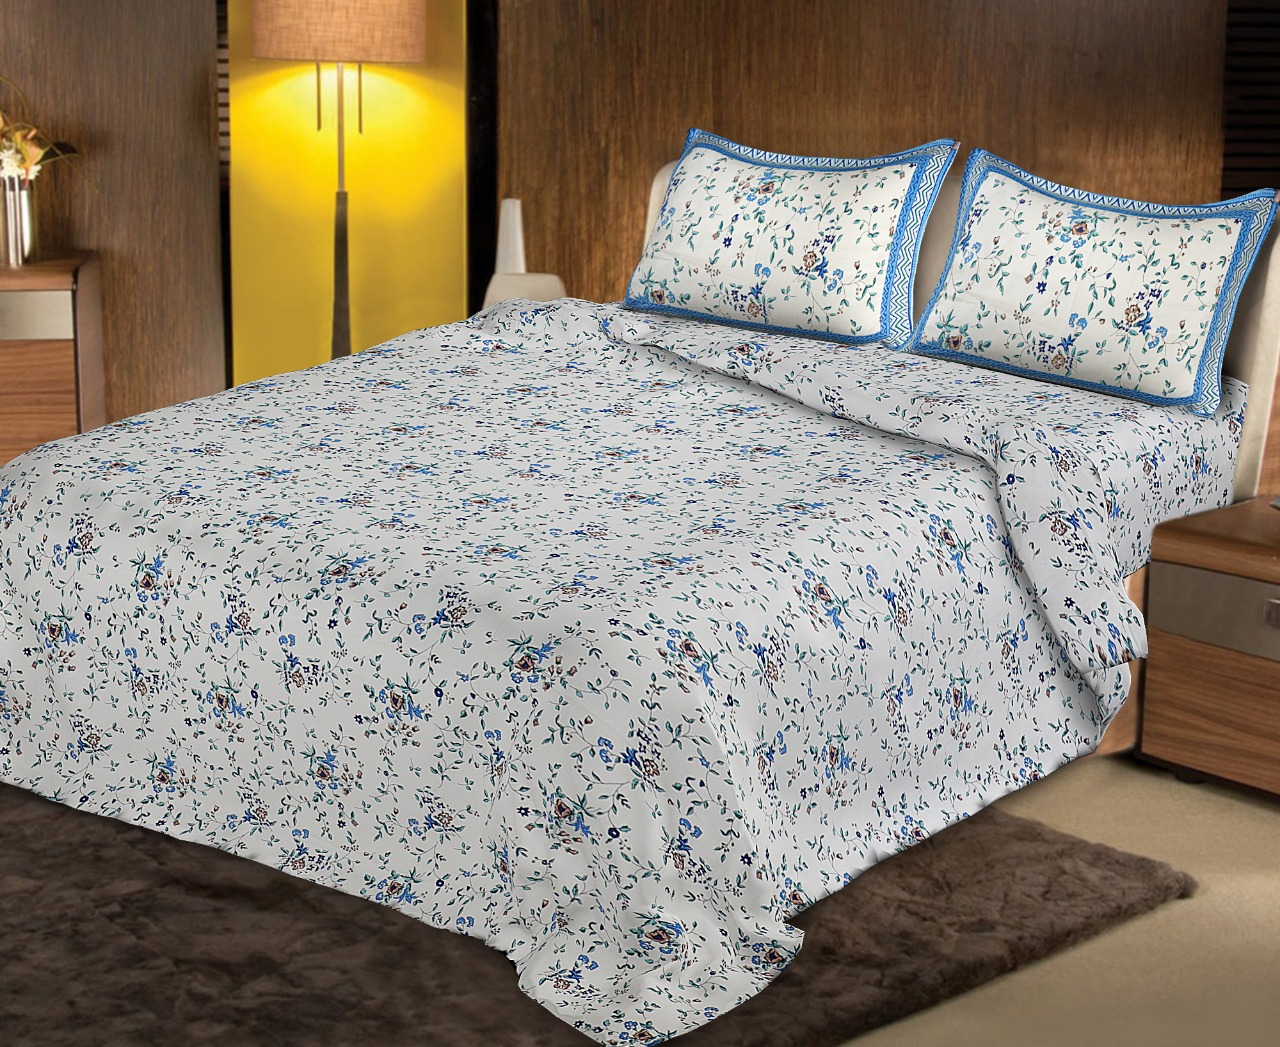 Pure Cotton 240 TC Double bedsheet in blue seamless floral print